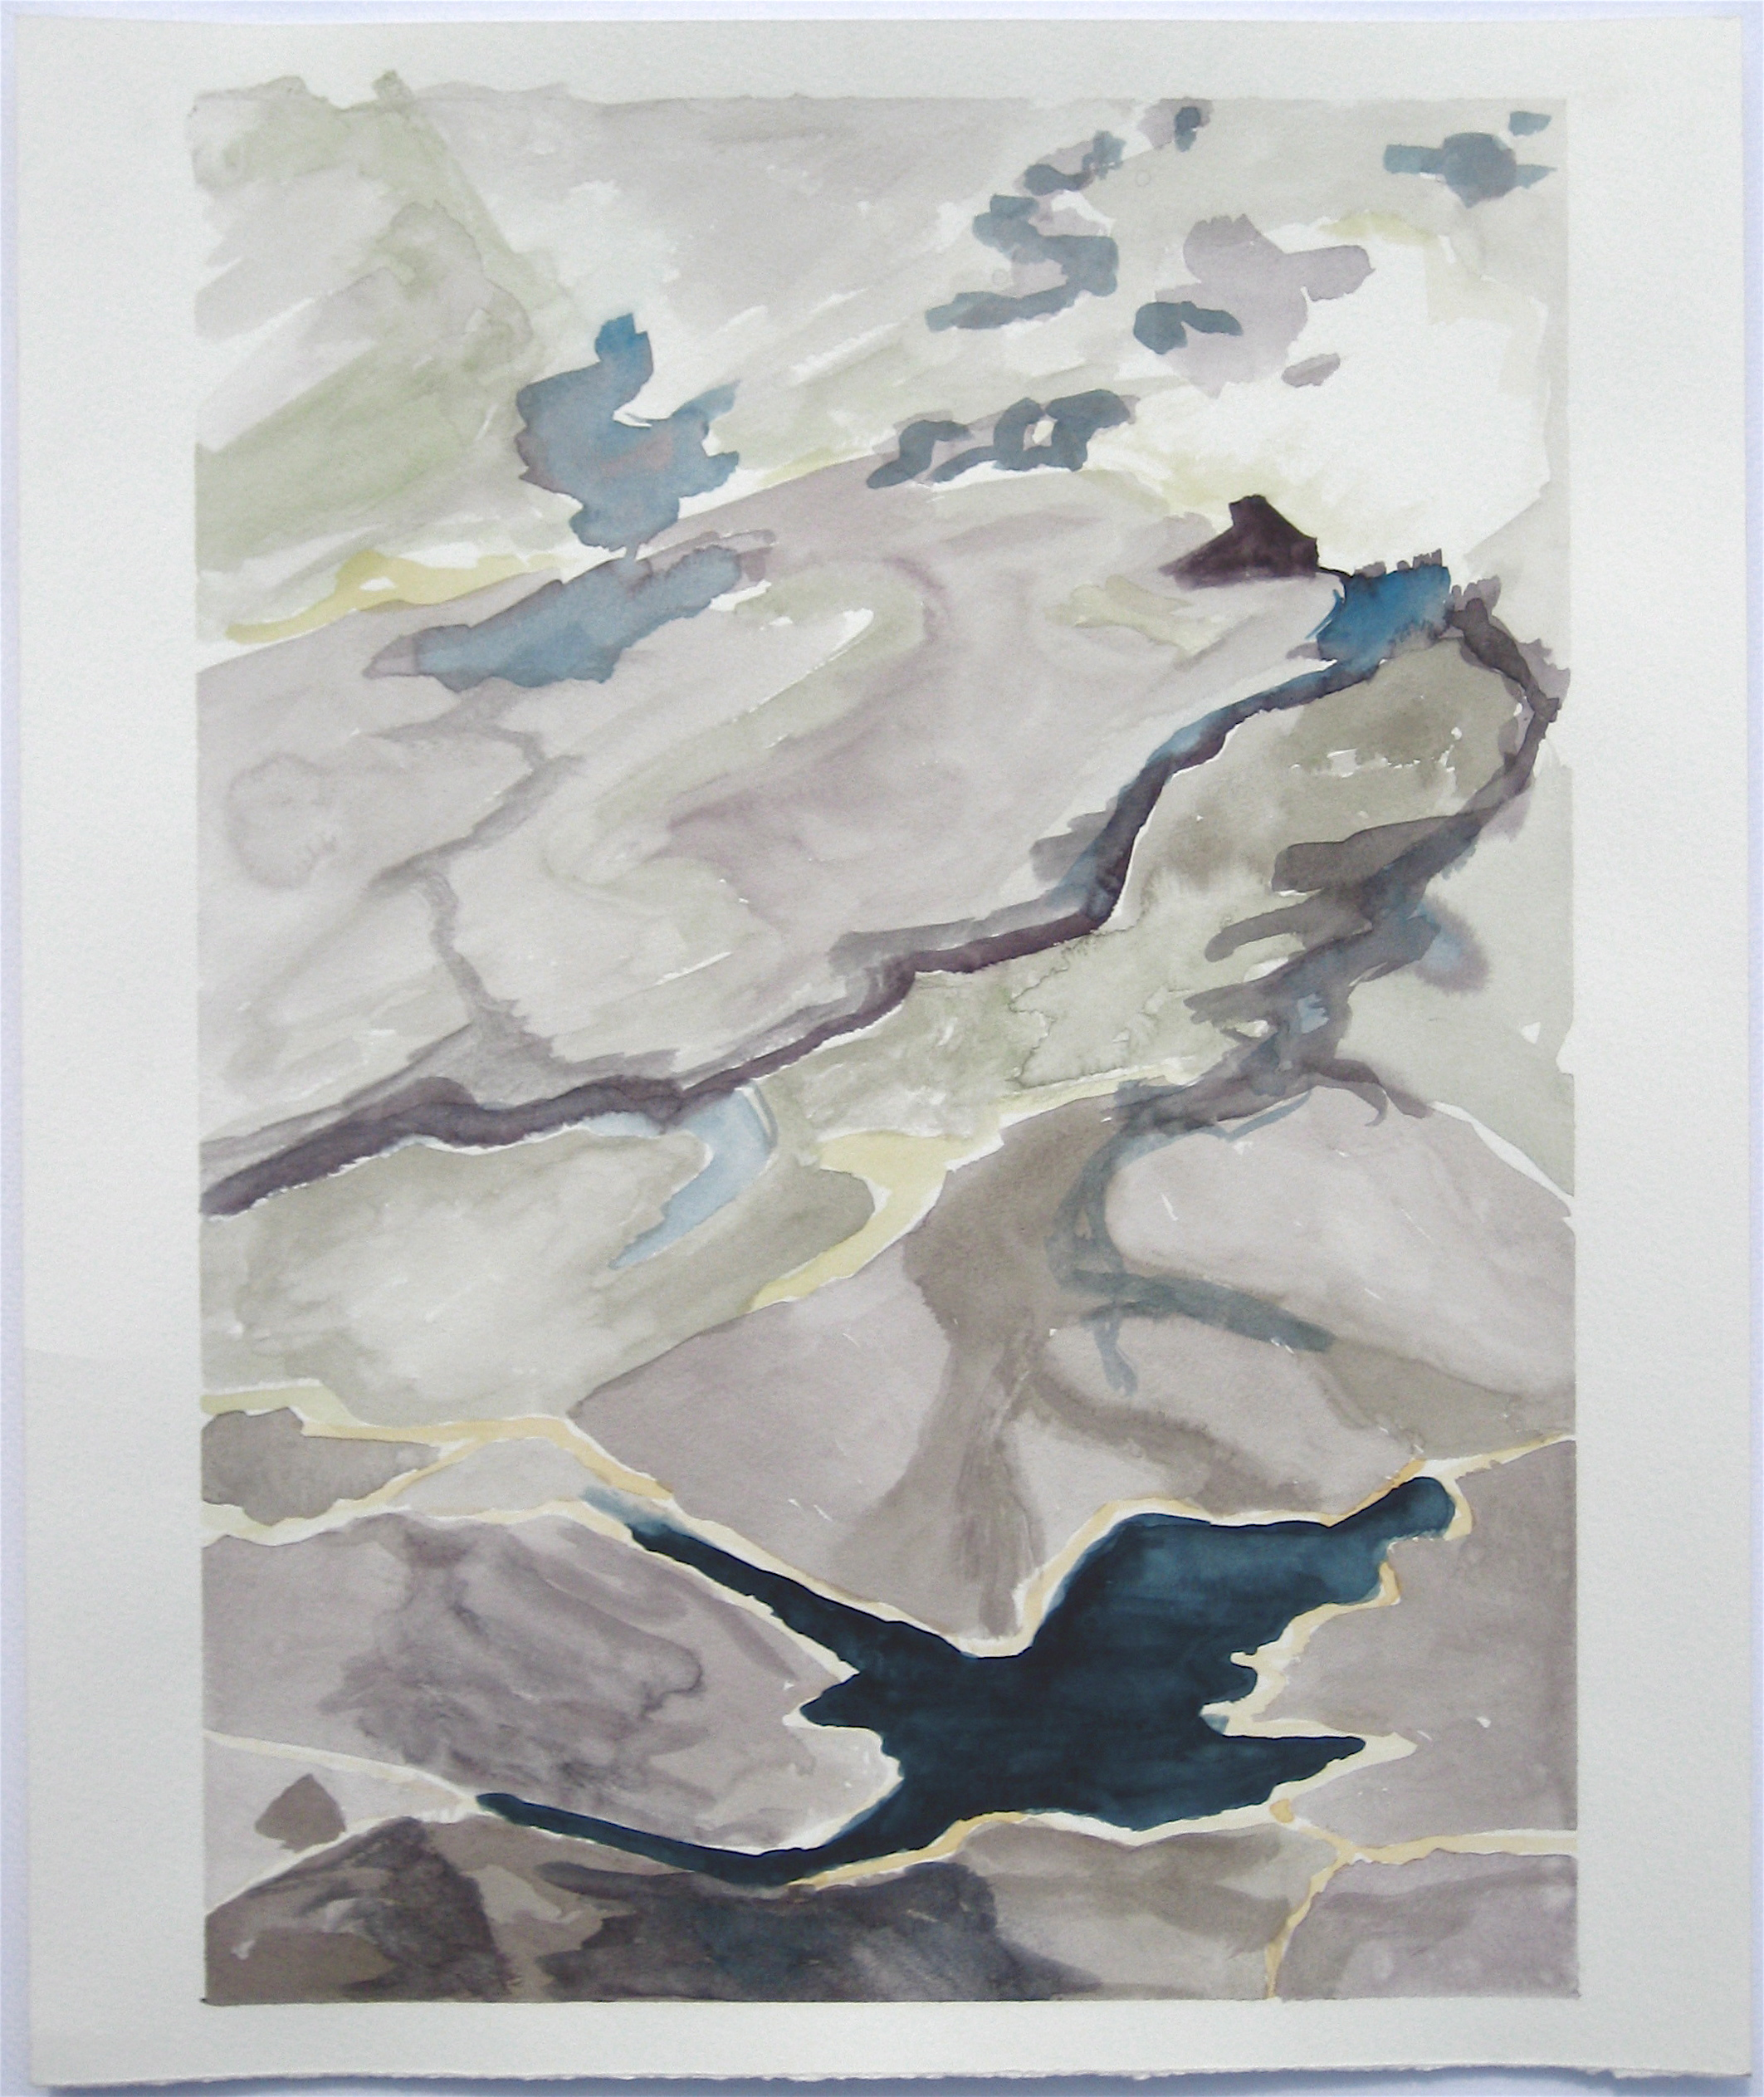 """Sky #1.5/2007, 2007, watercolor on paper paper: 18""""x15""""; image: 17""""x12"""""""